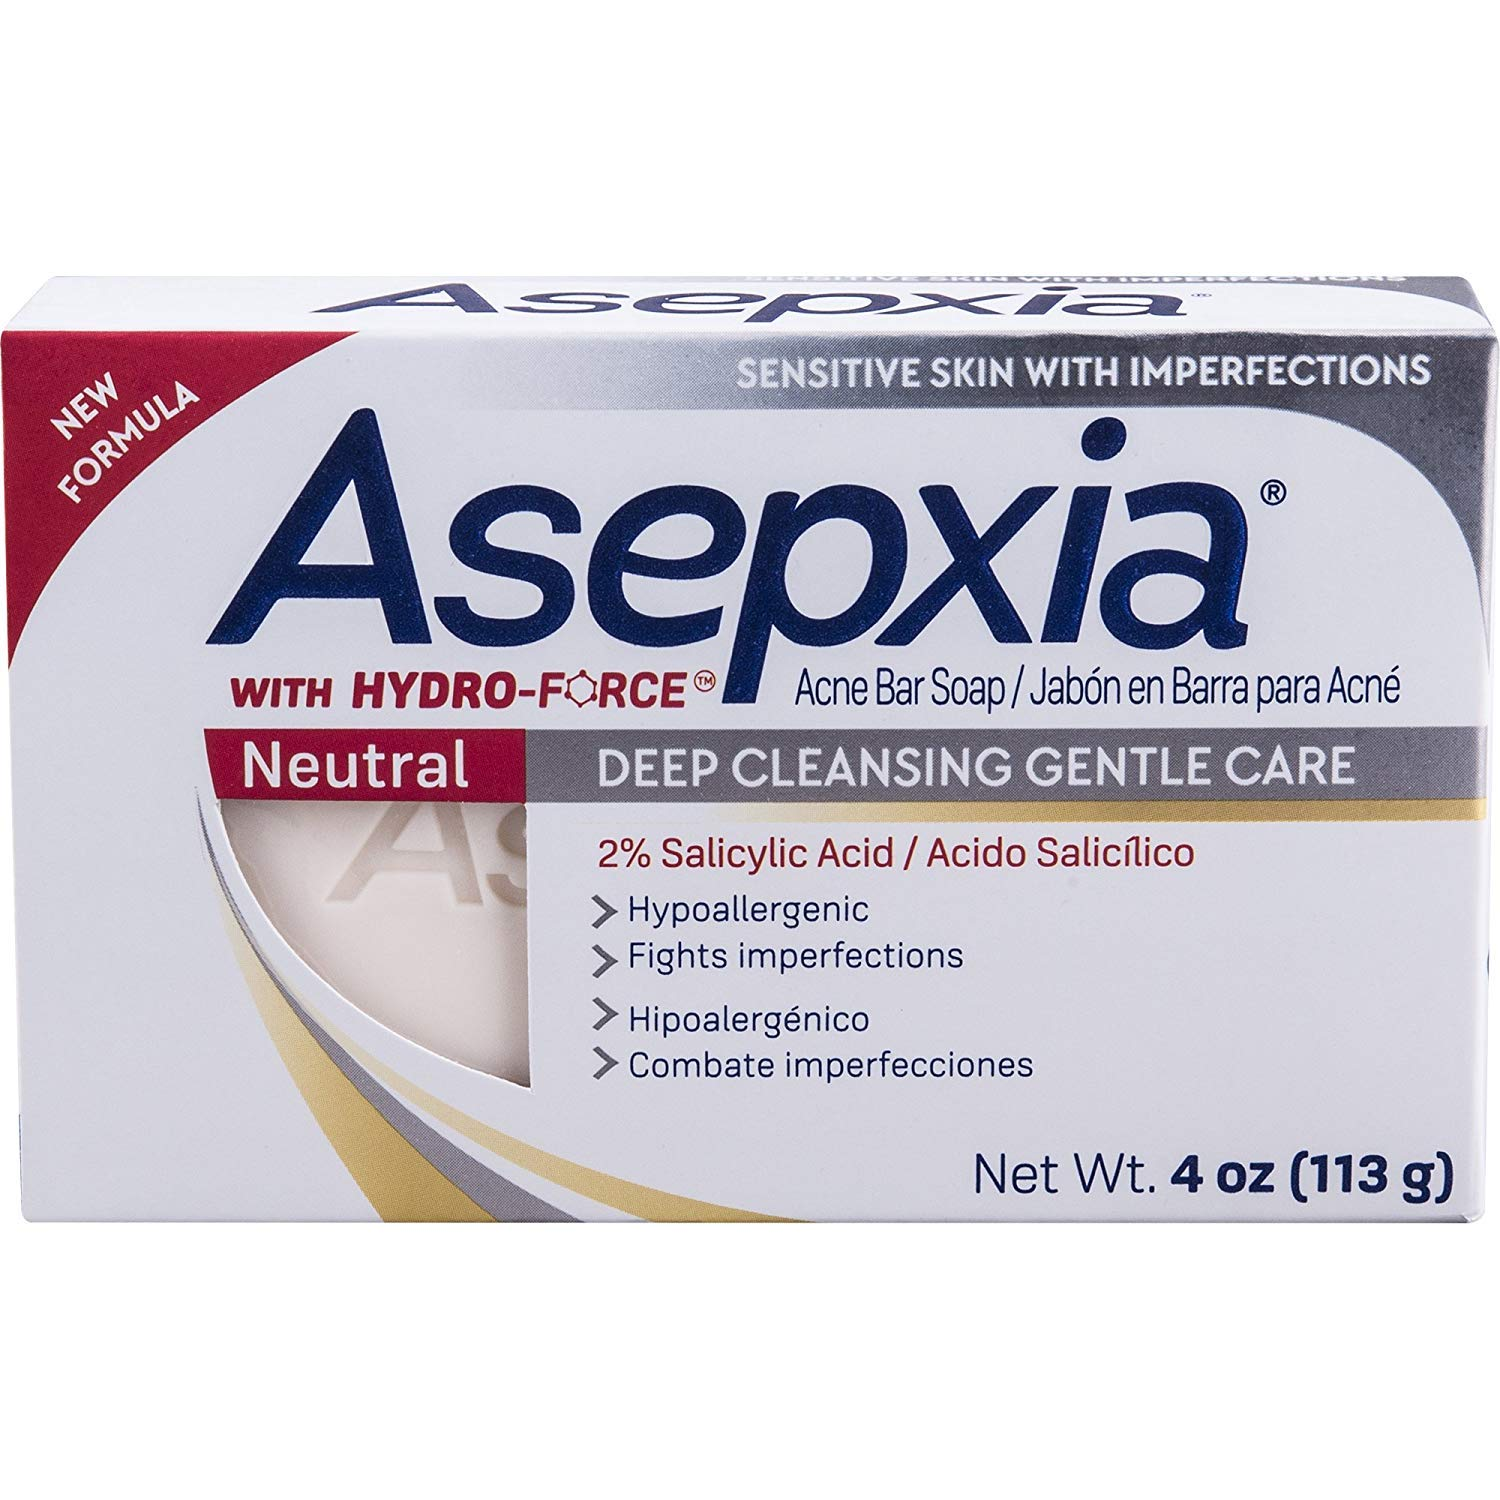 Asepxia Neutral Cleansing Soap Bar 3.53oz by Sanar